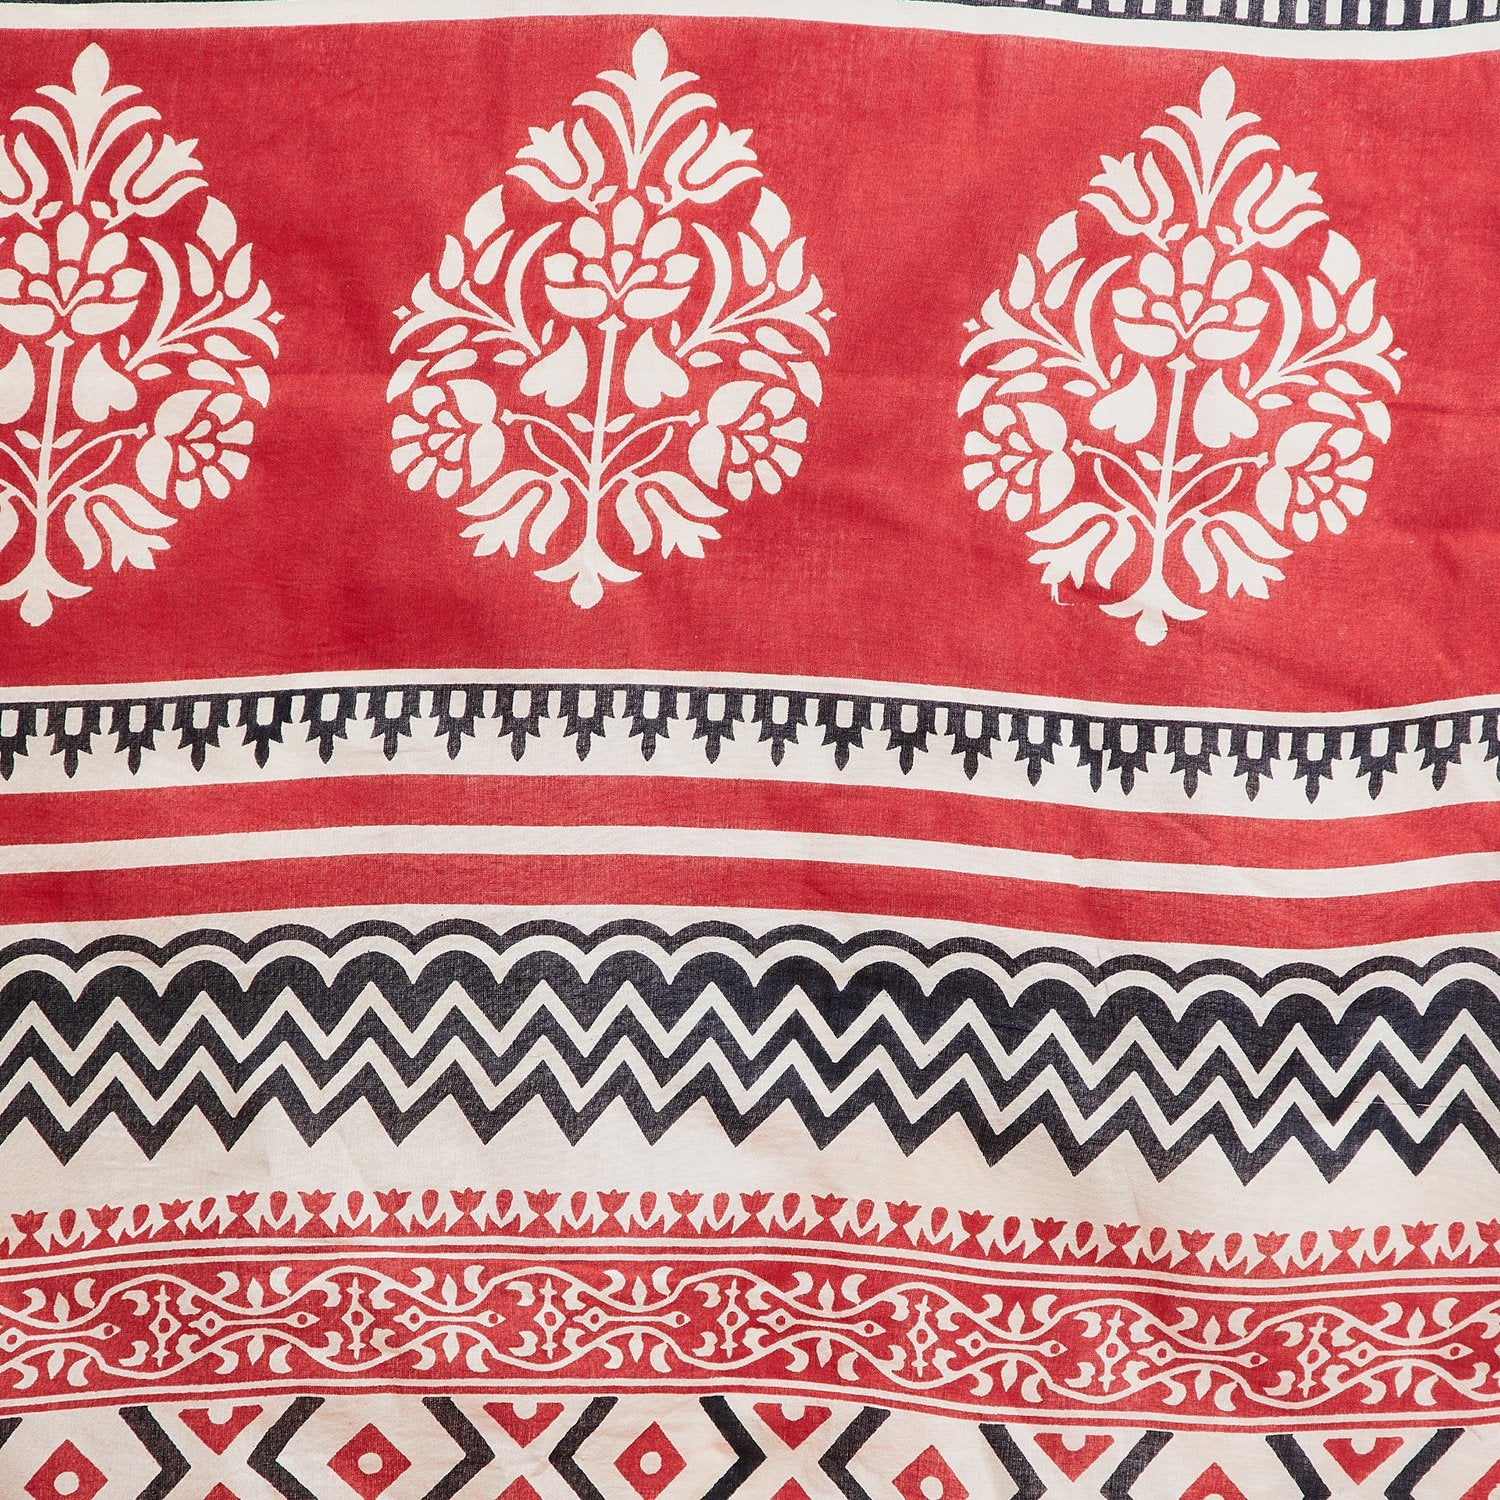 Red & White Sanganeri Hand Block Print Handcrafted Cotton Saree-Saree-Kalakari India-RDSNSA0115-Cotton, Geographical Indication, Hand Blocks, Hand Crafted, Heritage Prints, Sanganeri, Sustainable Fabrics-[Linen,Ethnic,wear,Fashionista,Handloom,Handicraft,Indigo,blockprint,block,print,Cotton,Chanderi,Blue, latest,classy,party,bollywood,trendy,summer,style,traditional,formal,elegant,unique,style,hand,block,print, dabu,booti,gift,present,glamorous,affordable,collectible,Sari,Saree,printed, holi, Di